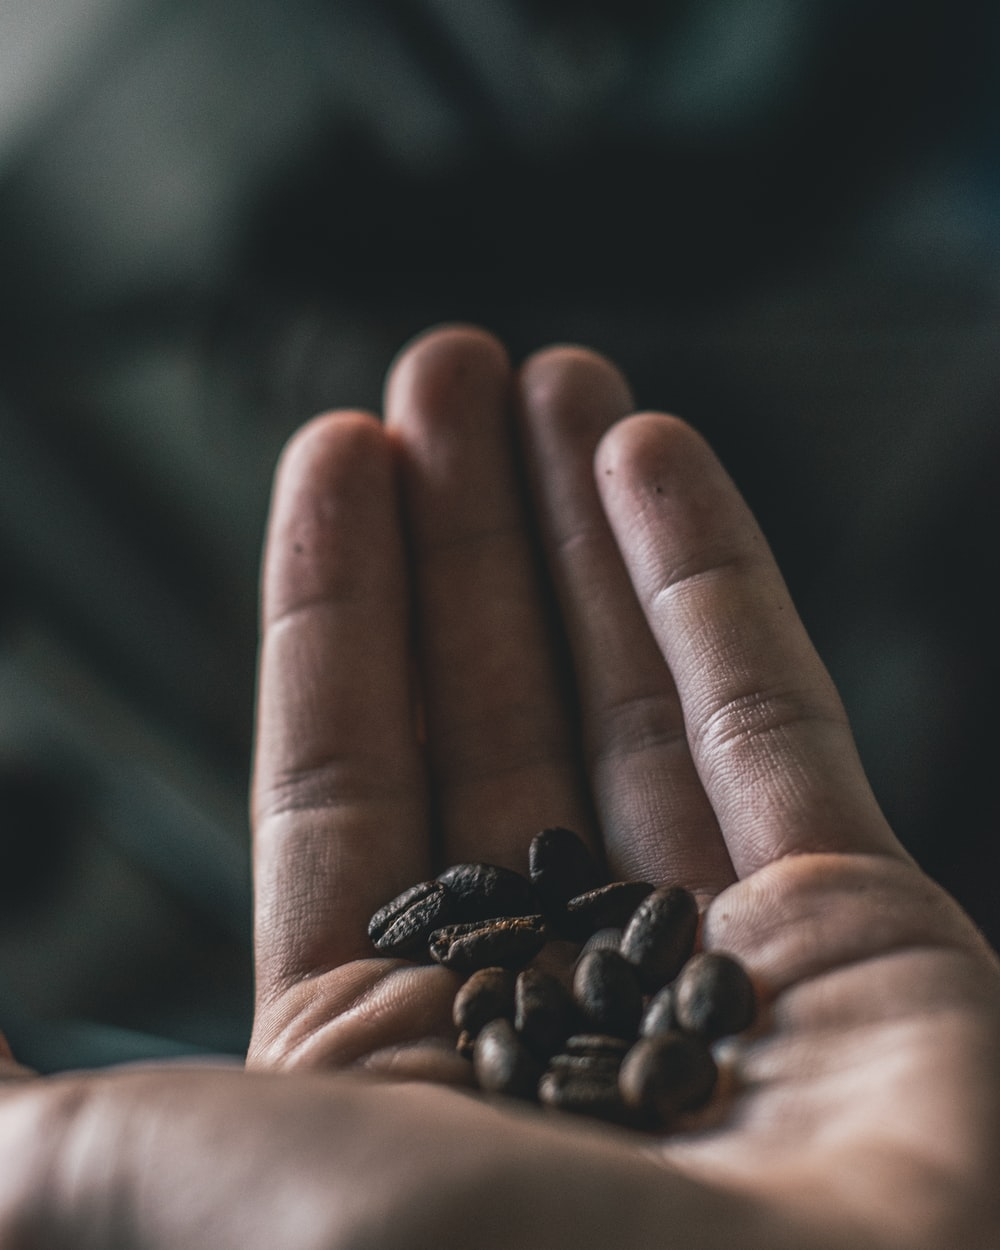 selective focus photography of coffee beans on person's hand